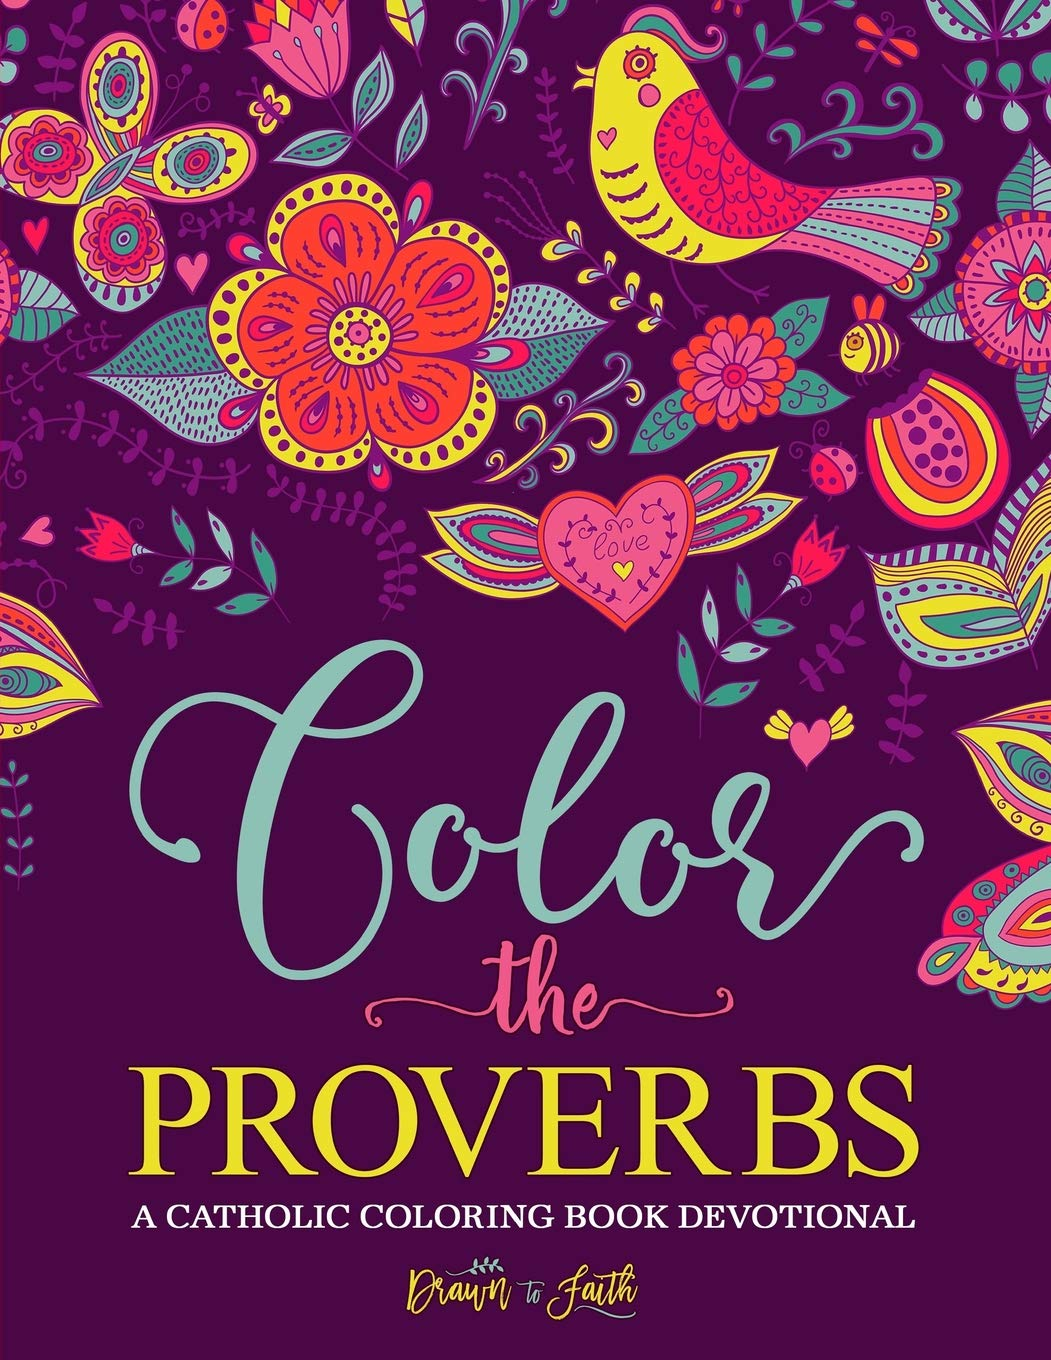 Amazon.com: Color the Proverbs: A Catholic Coloring Book Devotional ...